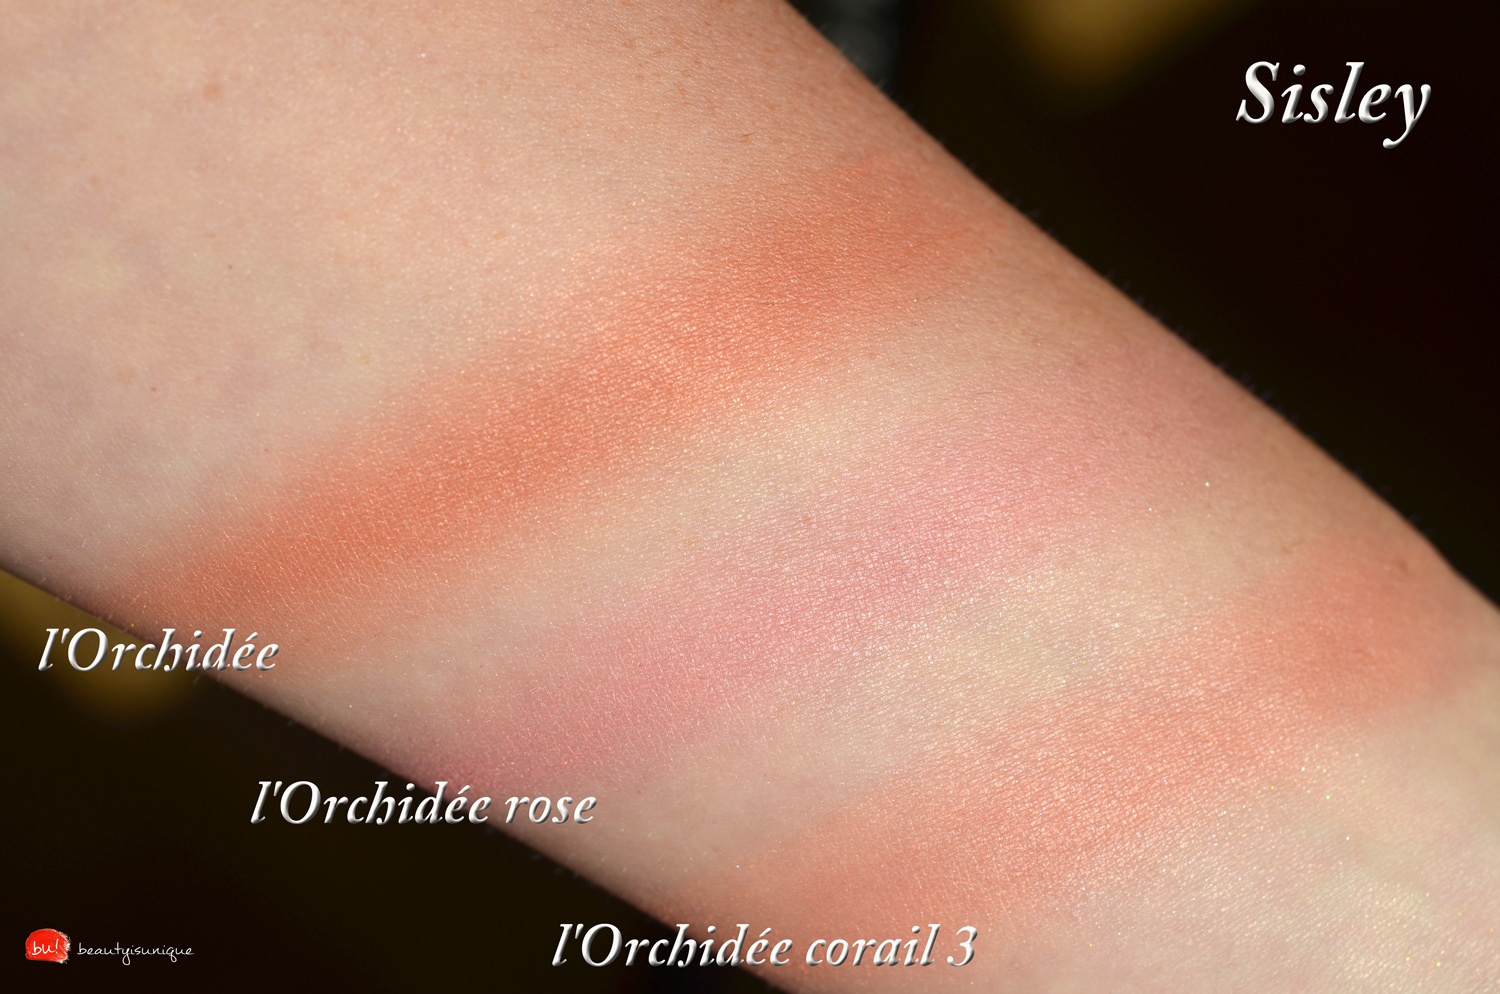 sisley-l'orchidee-corail-3-swatches